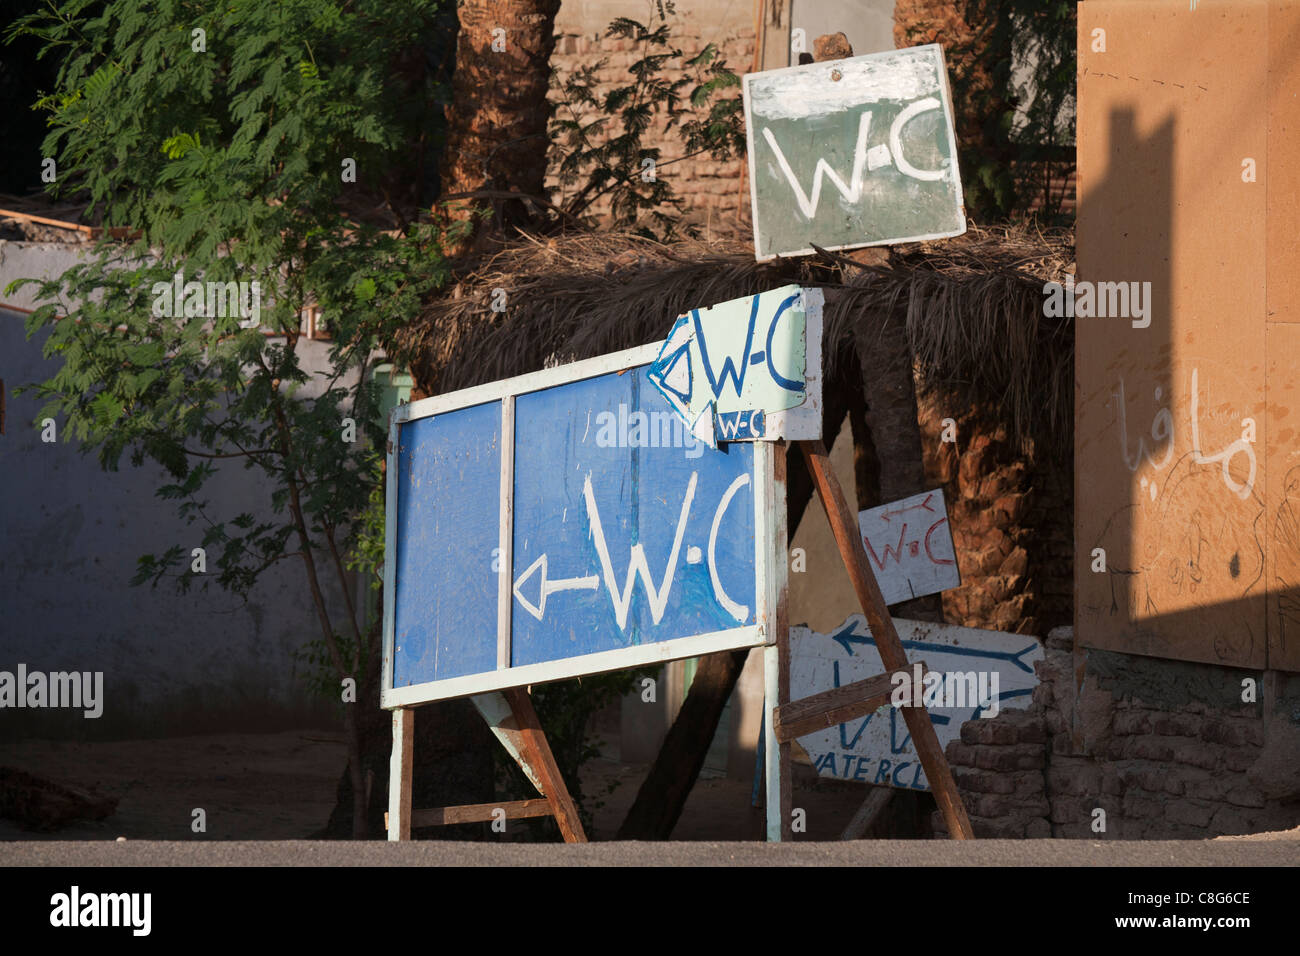 Multiple WC signs on the road side, Luxor. Egypt, Africa - Stock Image